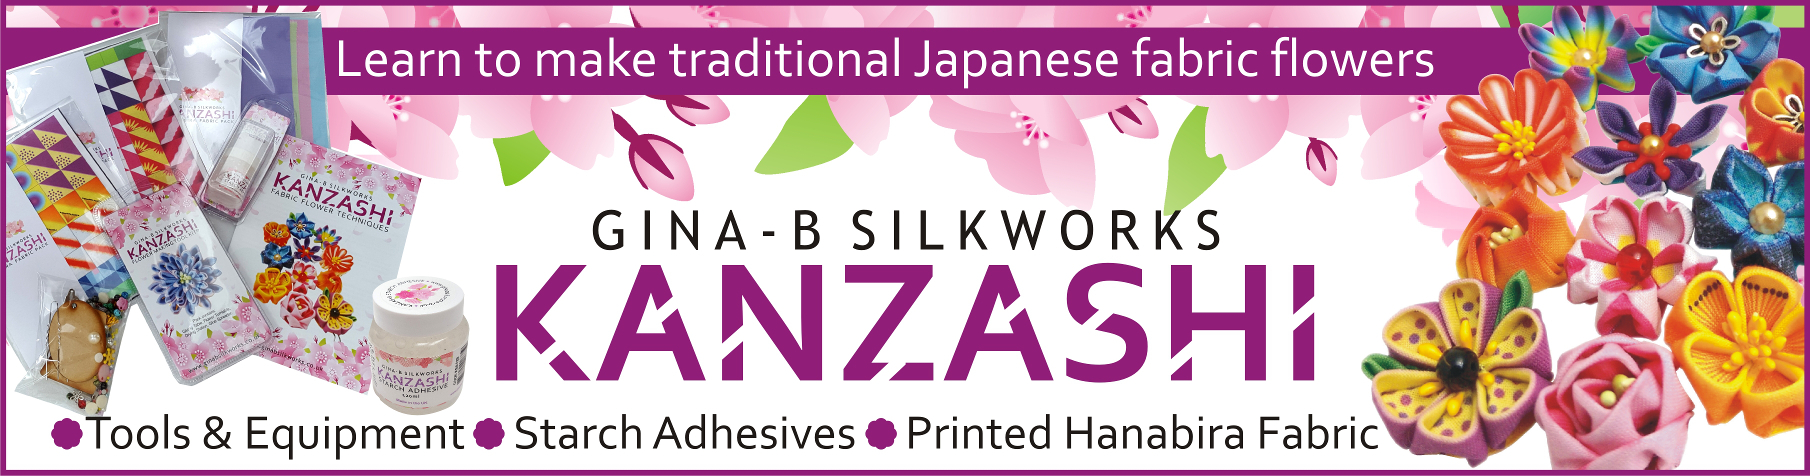 Kanzashi Flower Making tools and materials from Gina-B Silkworks